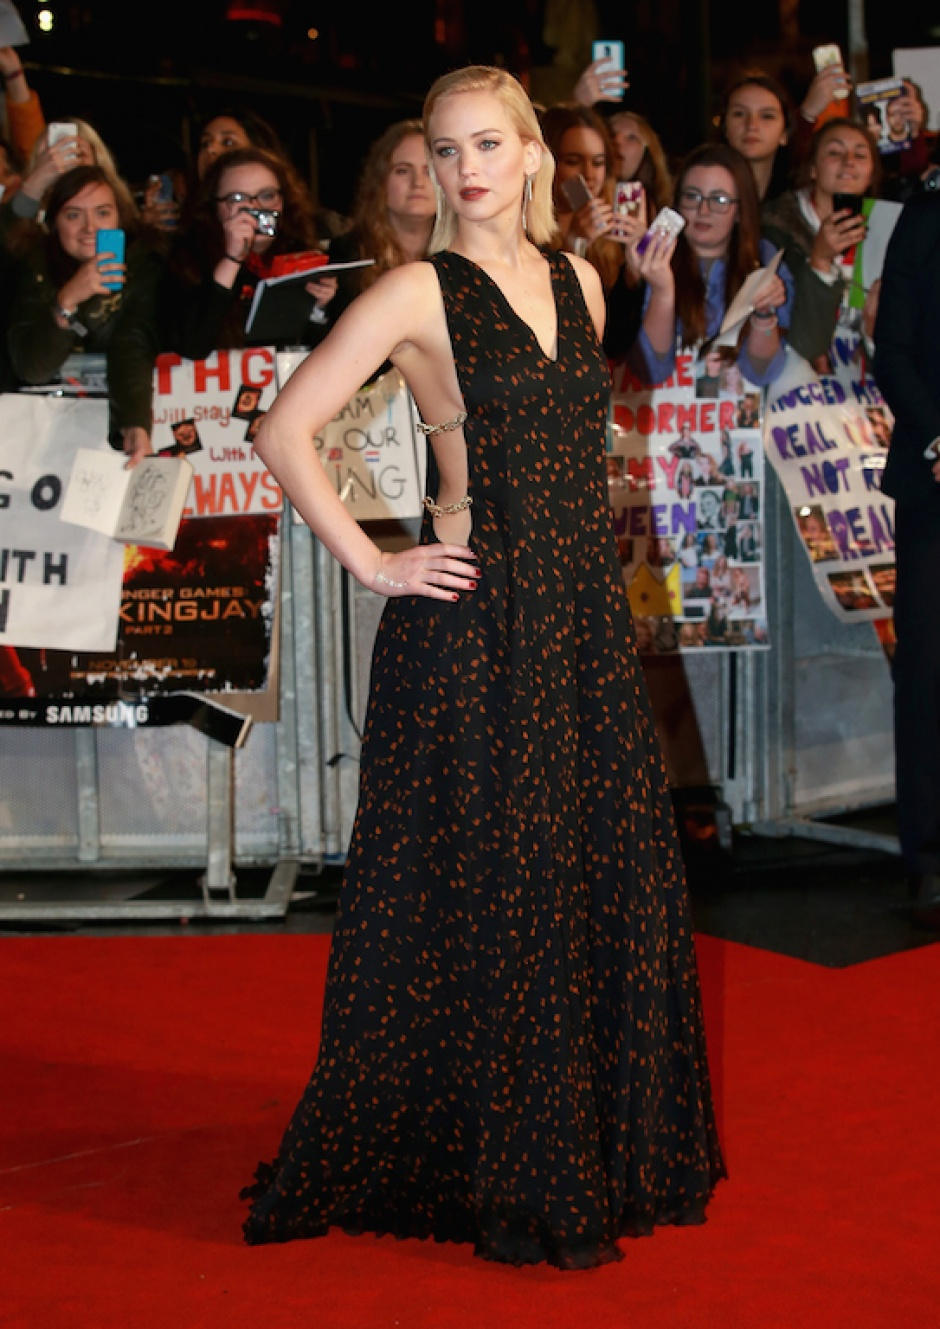 Jennifer Lawrence wearing a Dior Couture gown at the 'The Hunger Games: Mockingjay Part 2' premiere